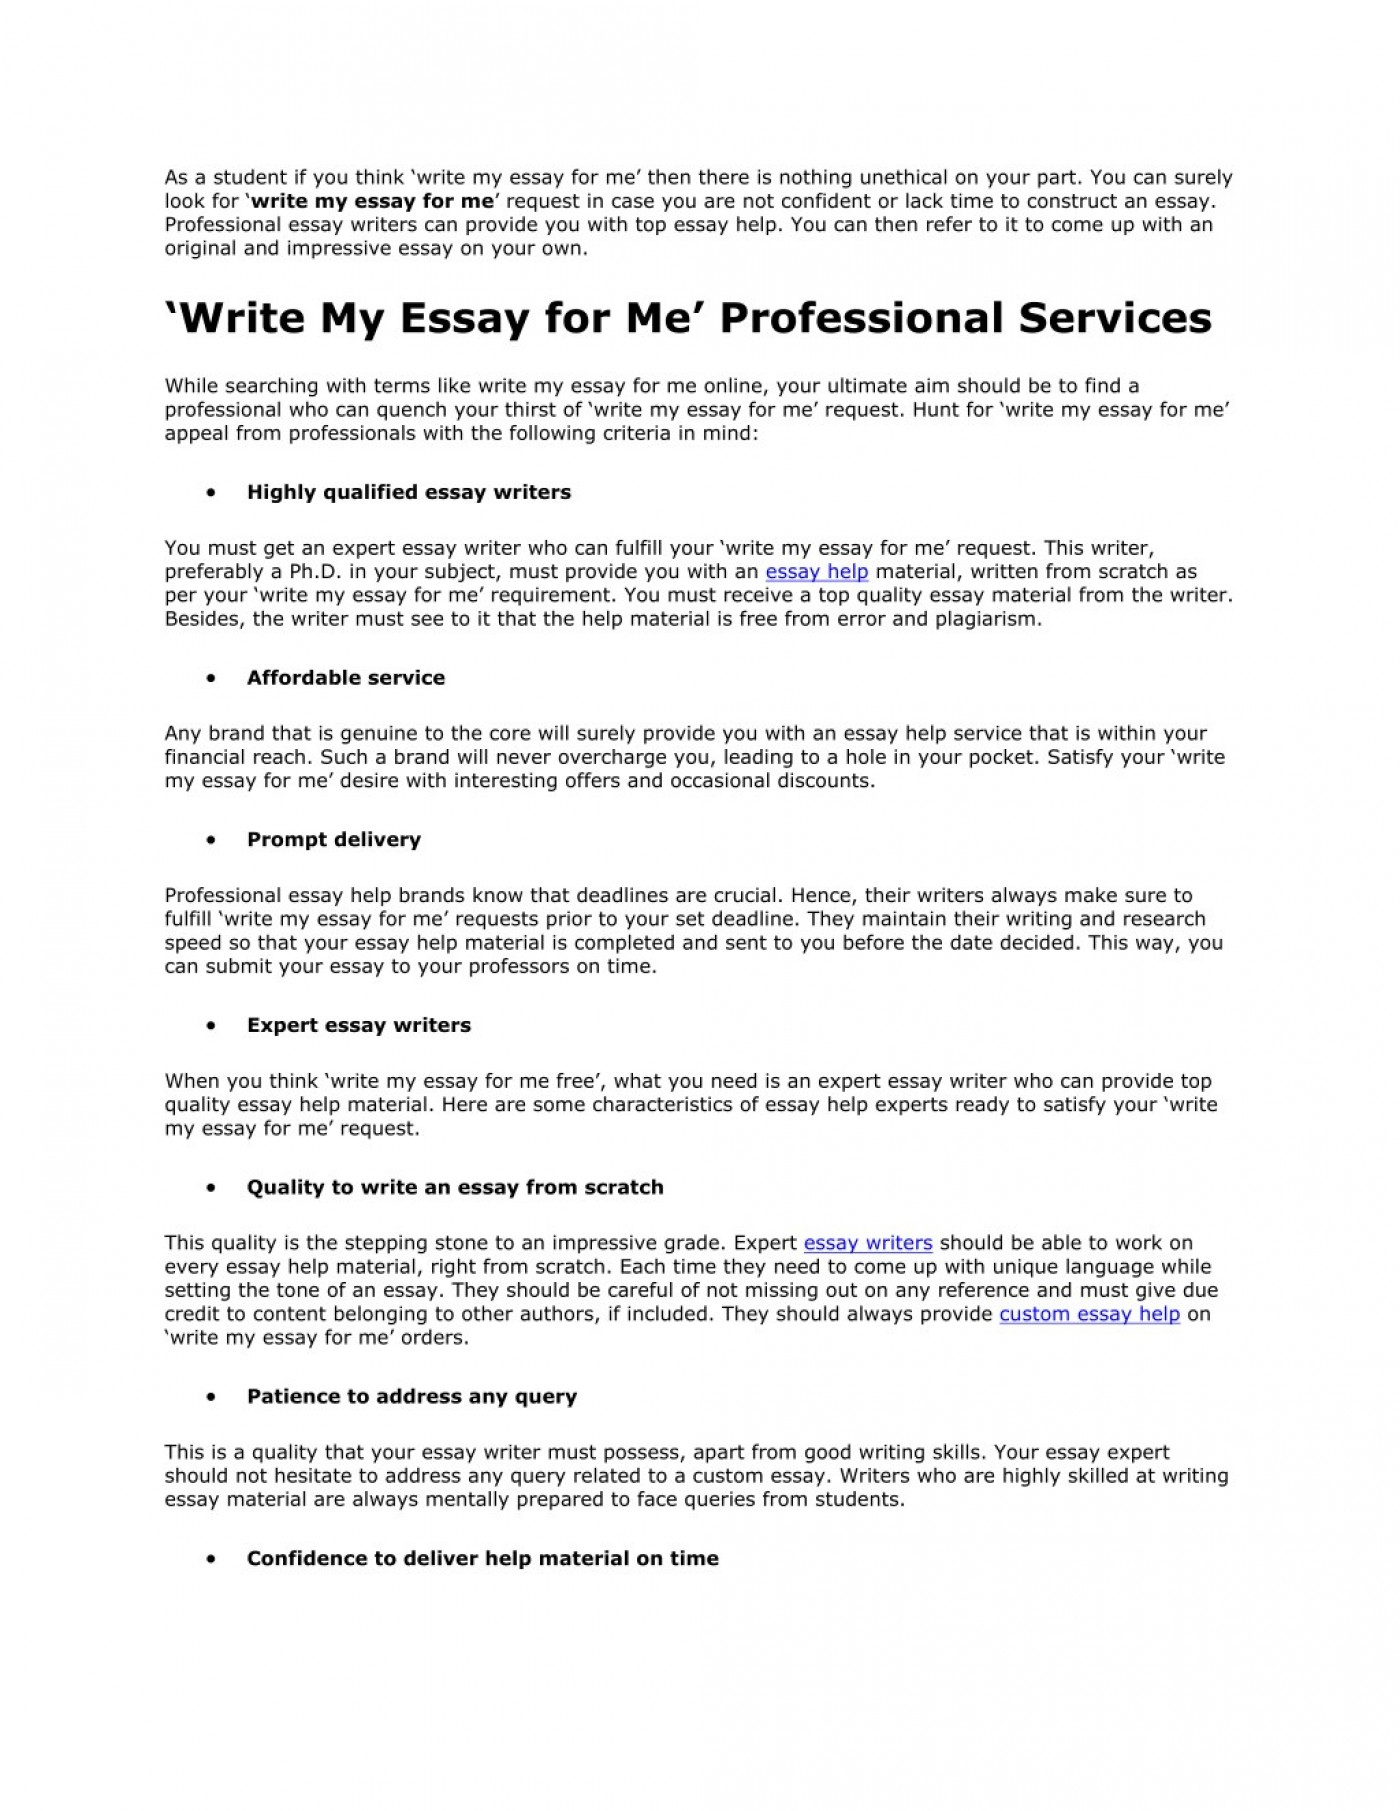 017 Write My Essay For Me Example As Student If You Think Surprising Free Online Generator 1400